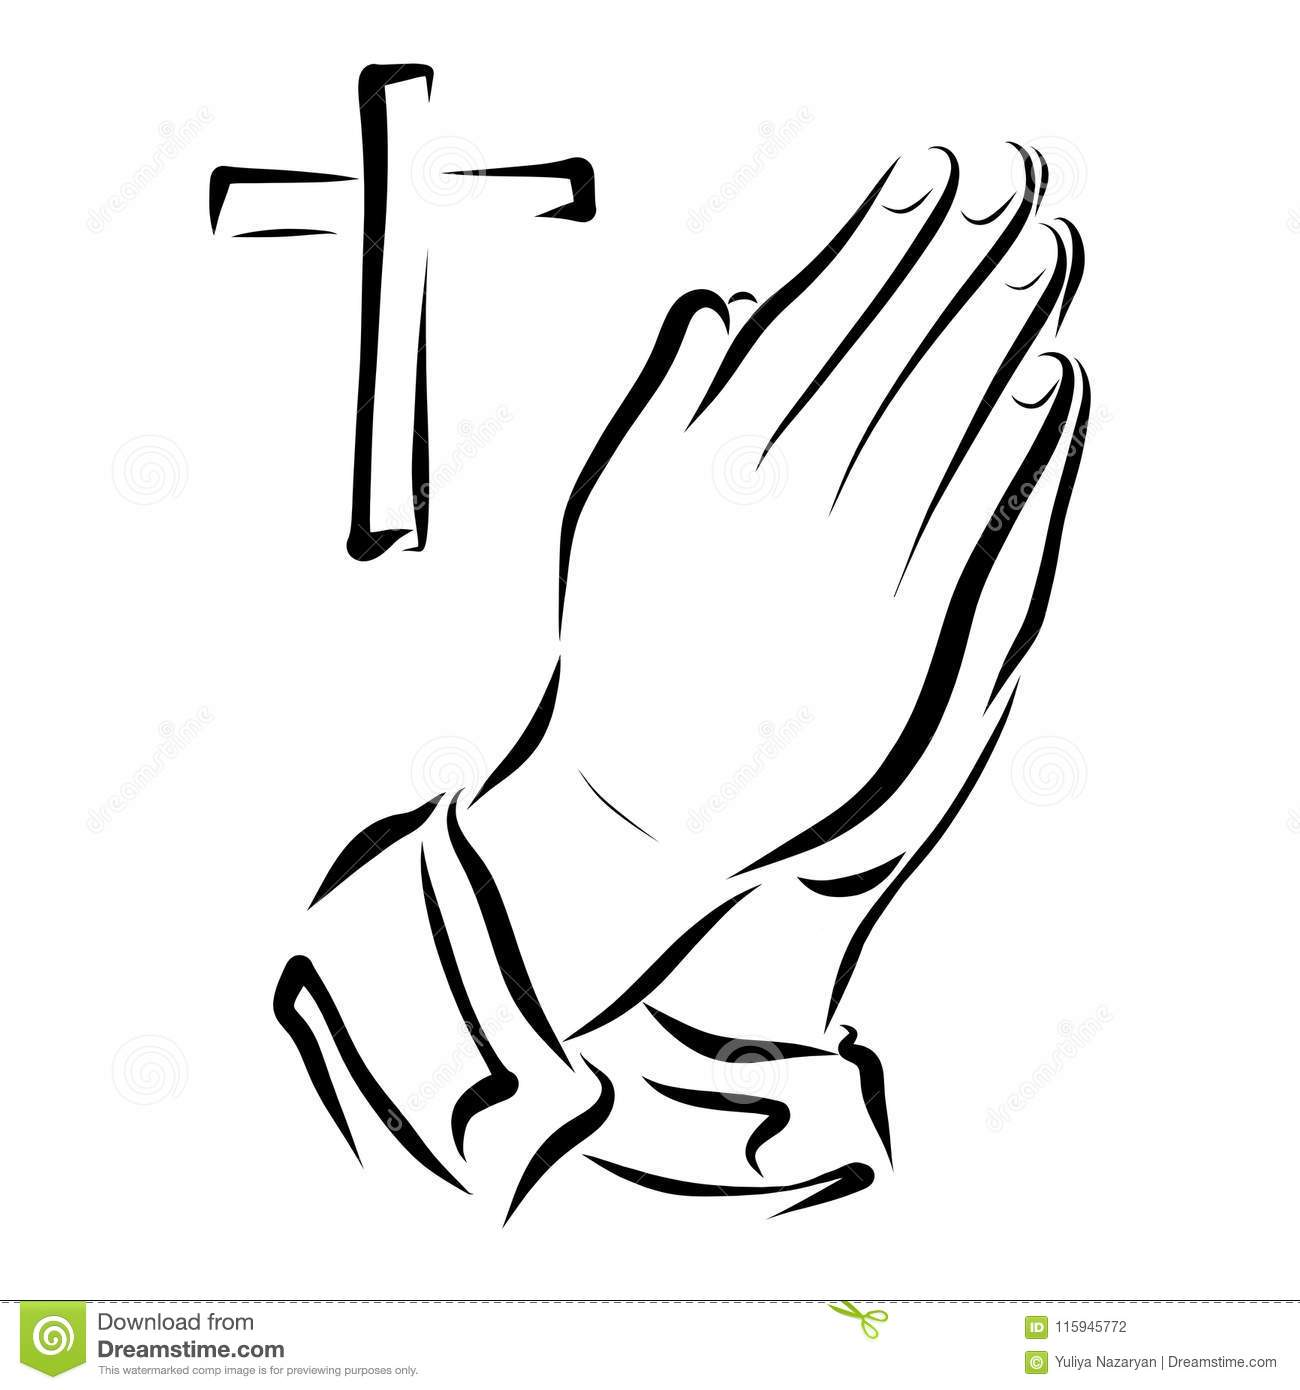 Hands Of A Praying Person And A Cross Stock Illustration